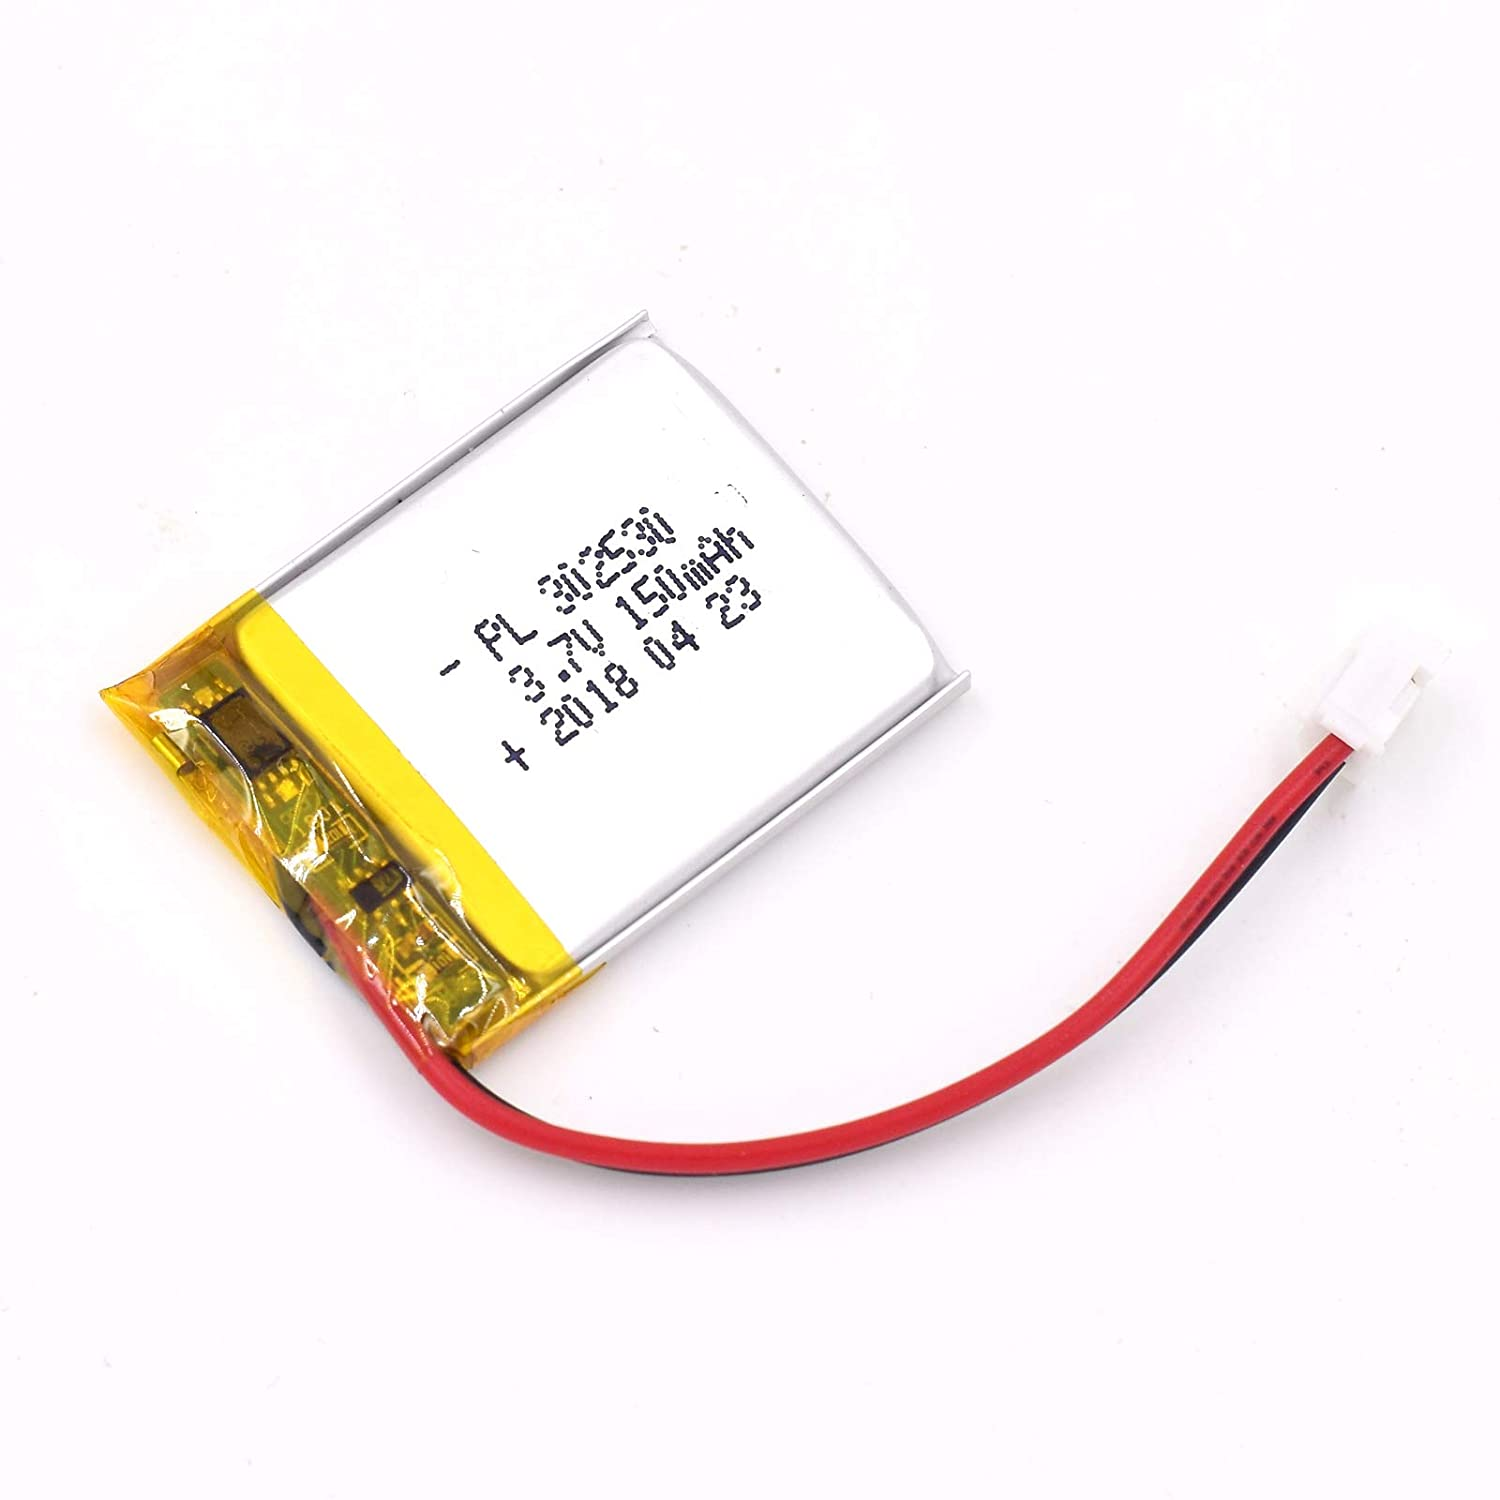 3.7V 150mAh 302530 Lipo battery Rechargeable Lithium Polymer ion Battery Pack with JST Connector